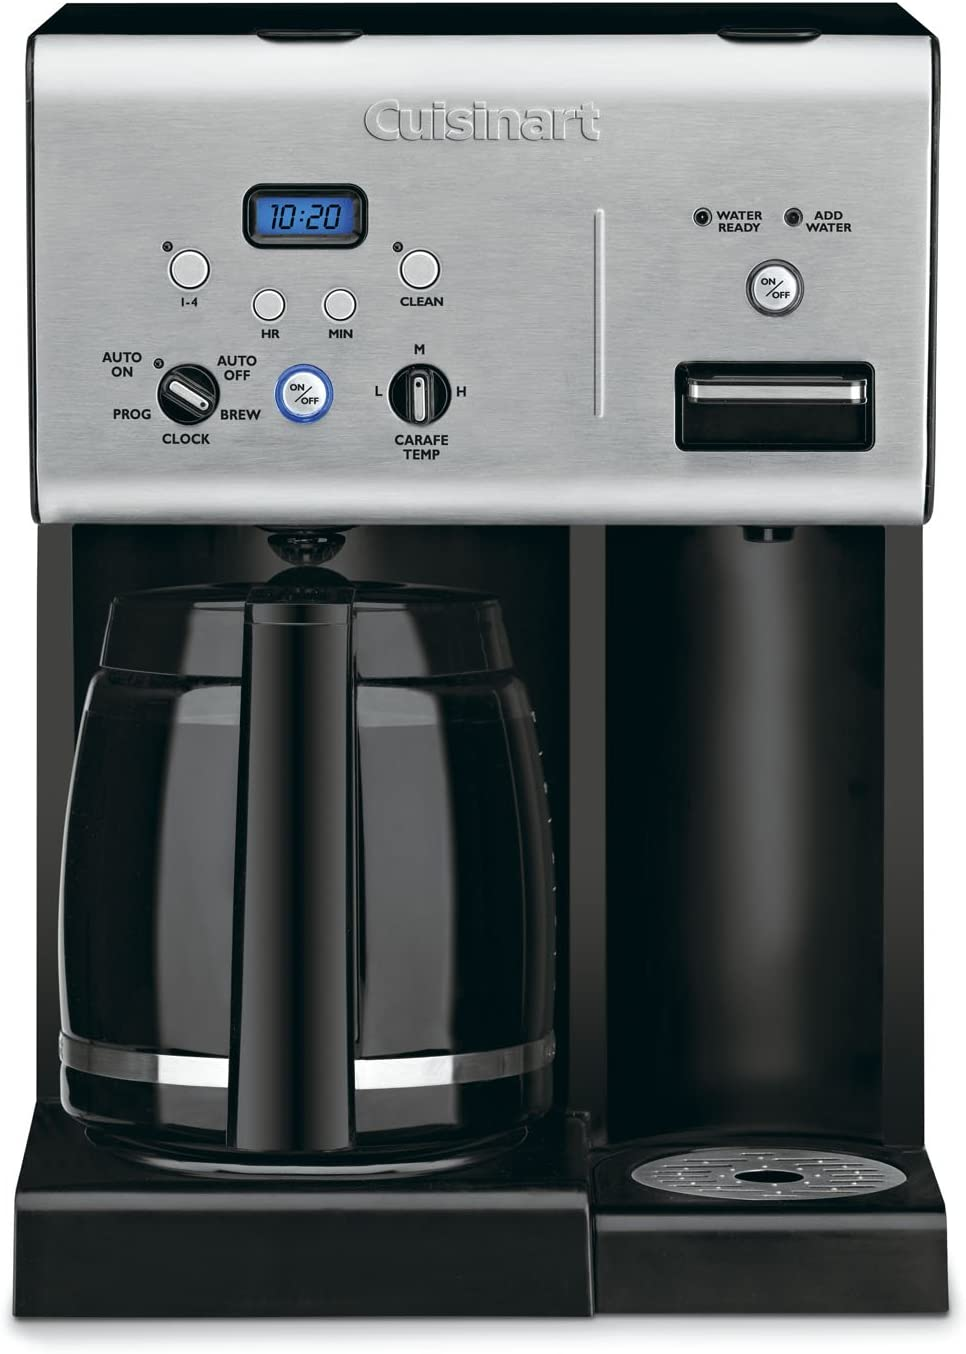 Cuisinart CHW-12P1 12-Cup Programmable Coffee maker